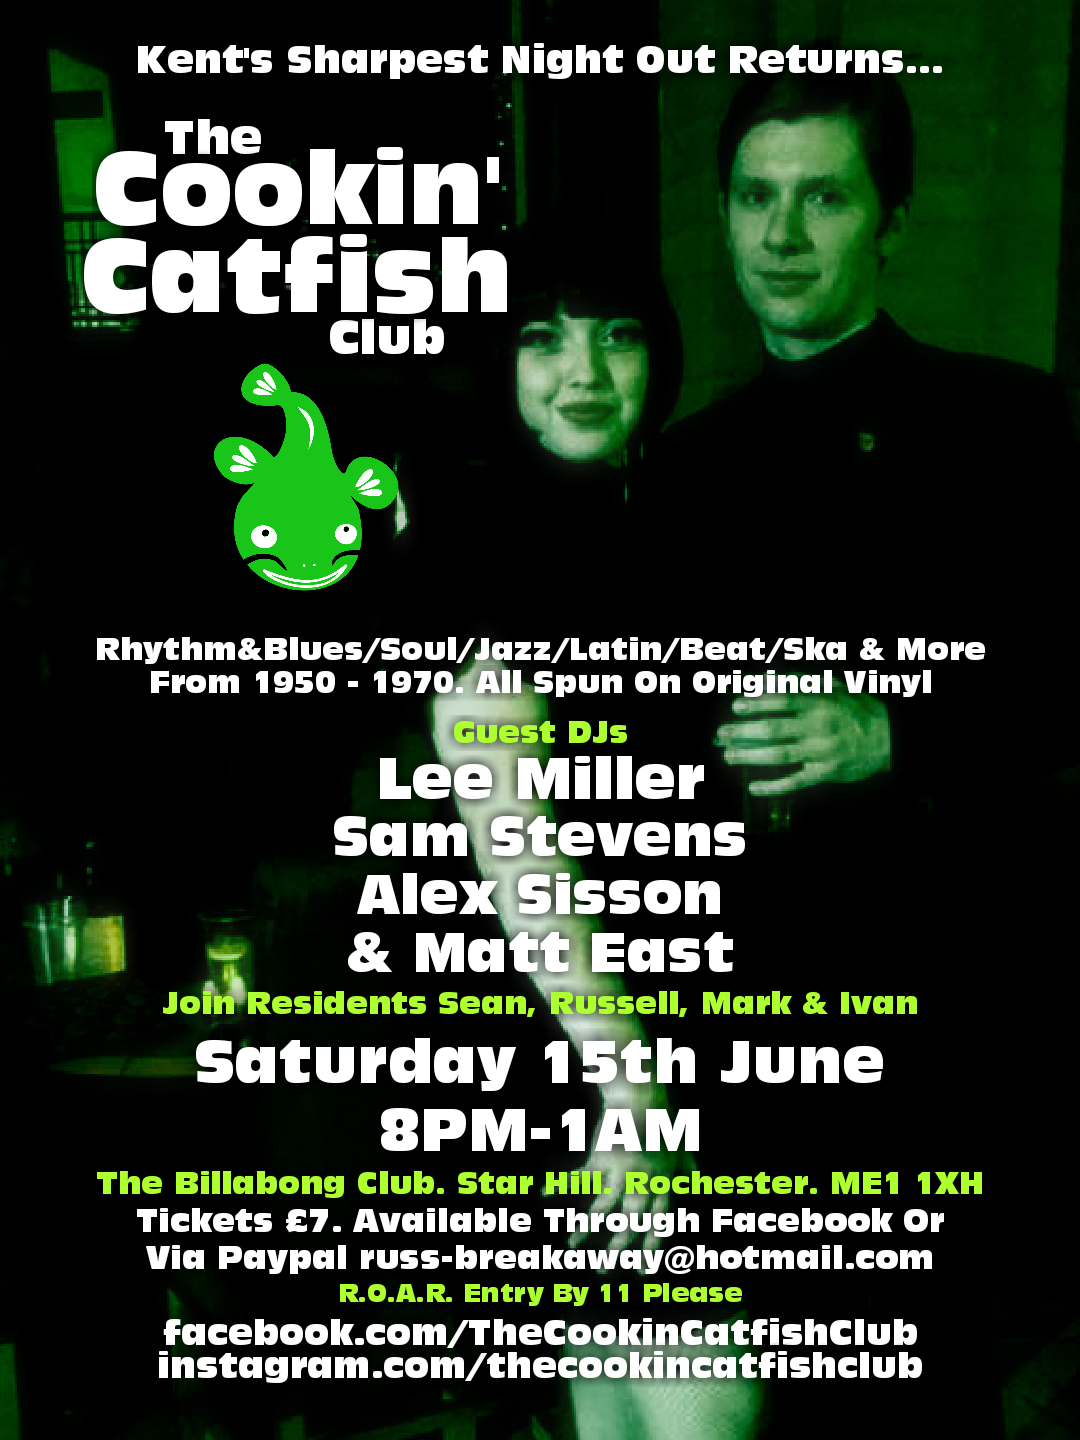 The Cookin Catfish Club flyer